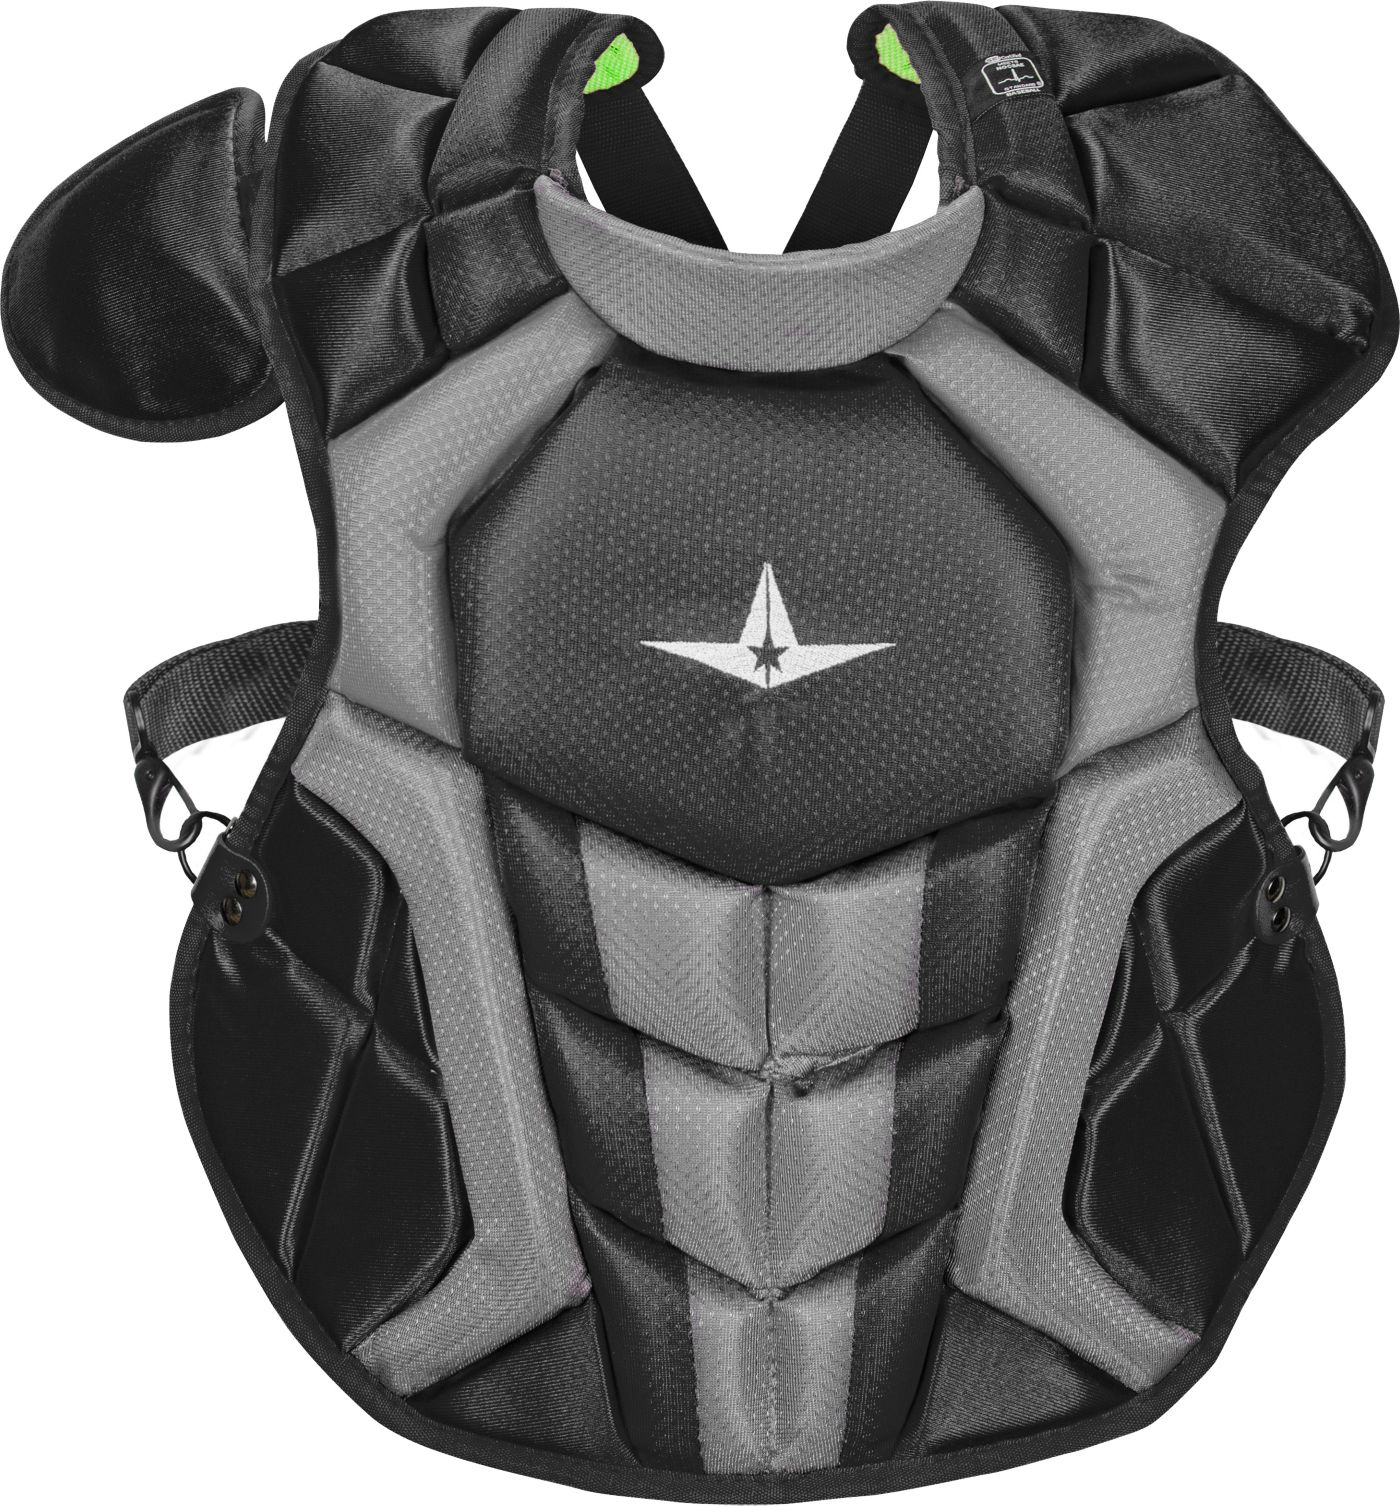 All-Star Adult 16.5'' S7 AXIS Chest Protector